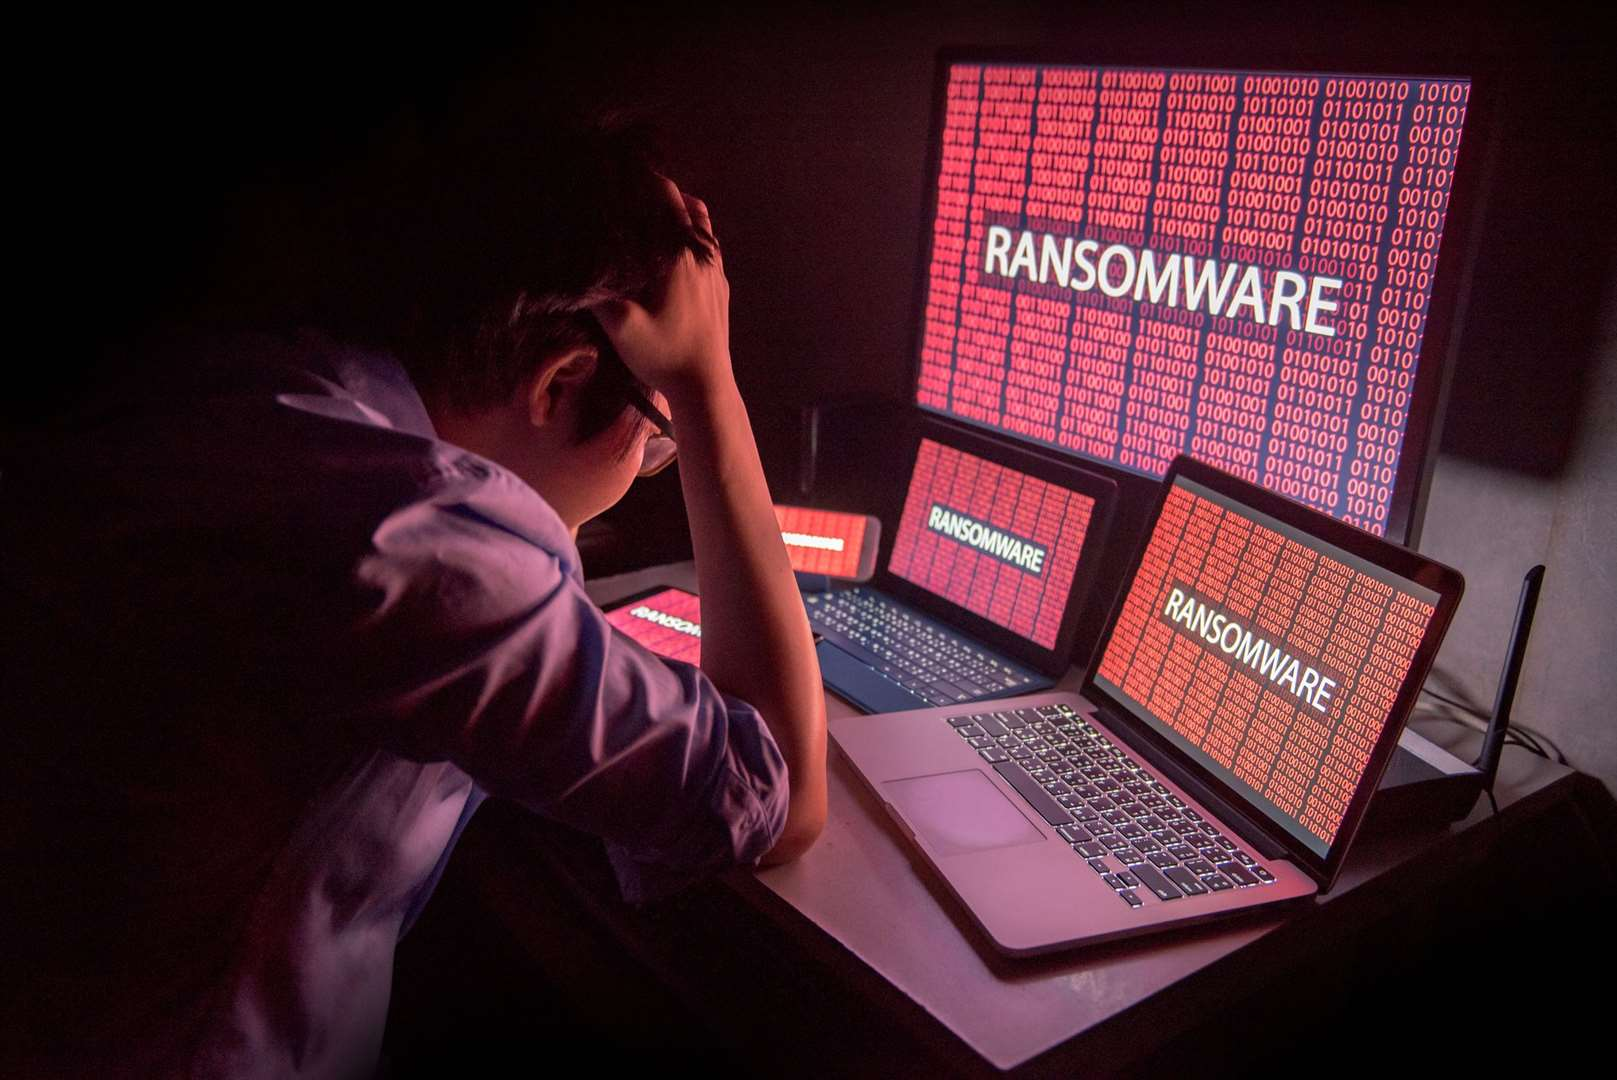 Ransomware is just one of a host of ways your systems can come under attack